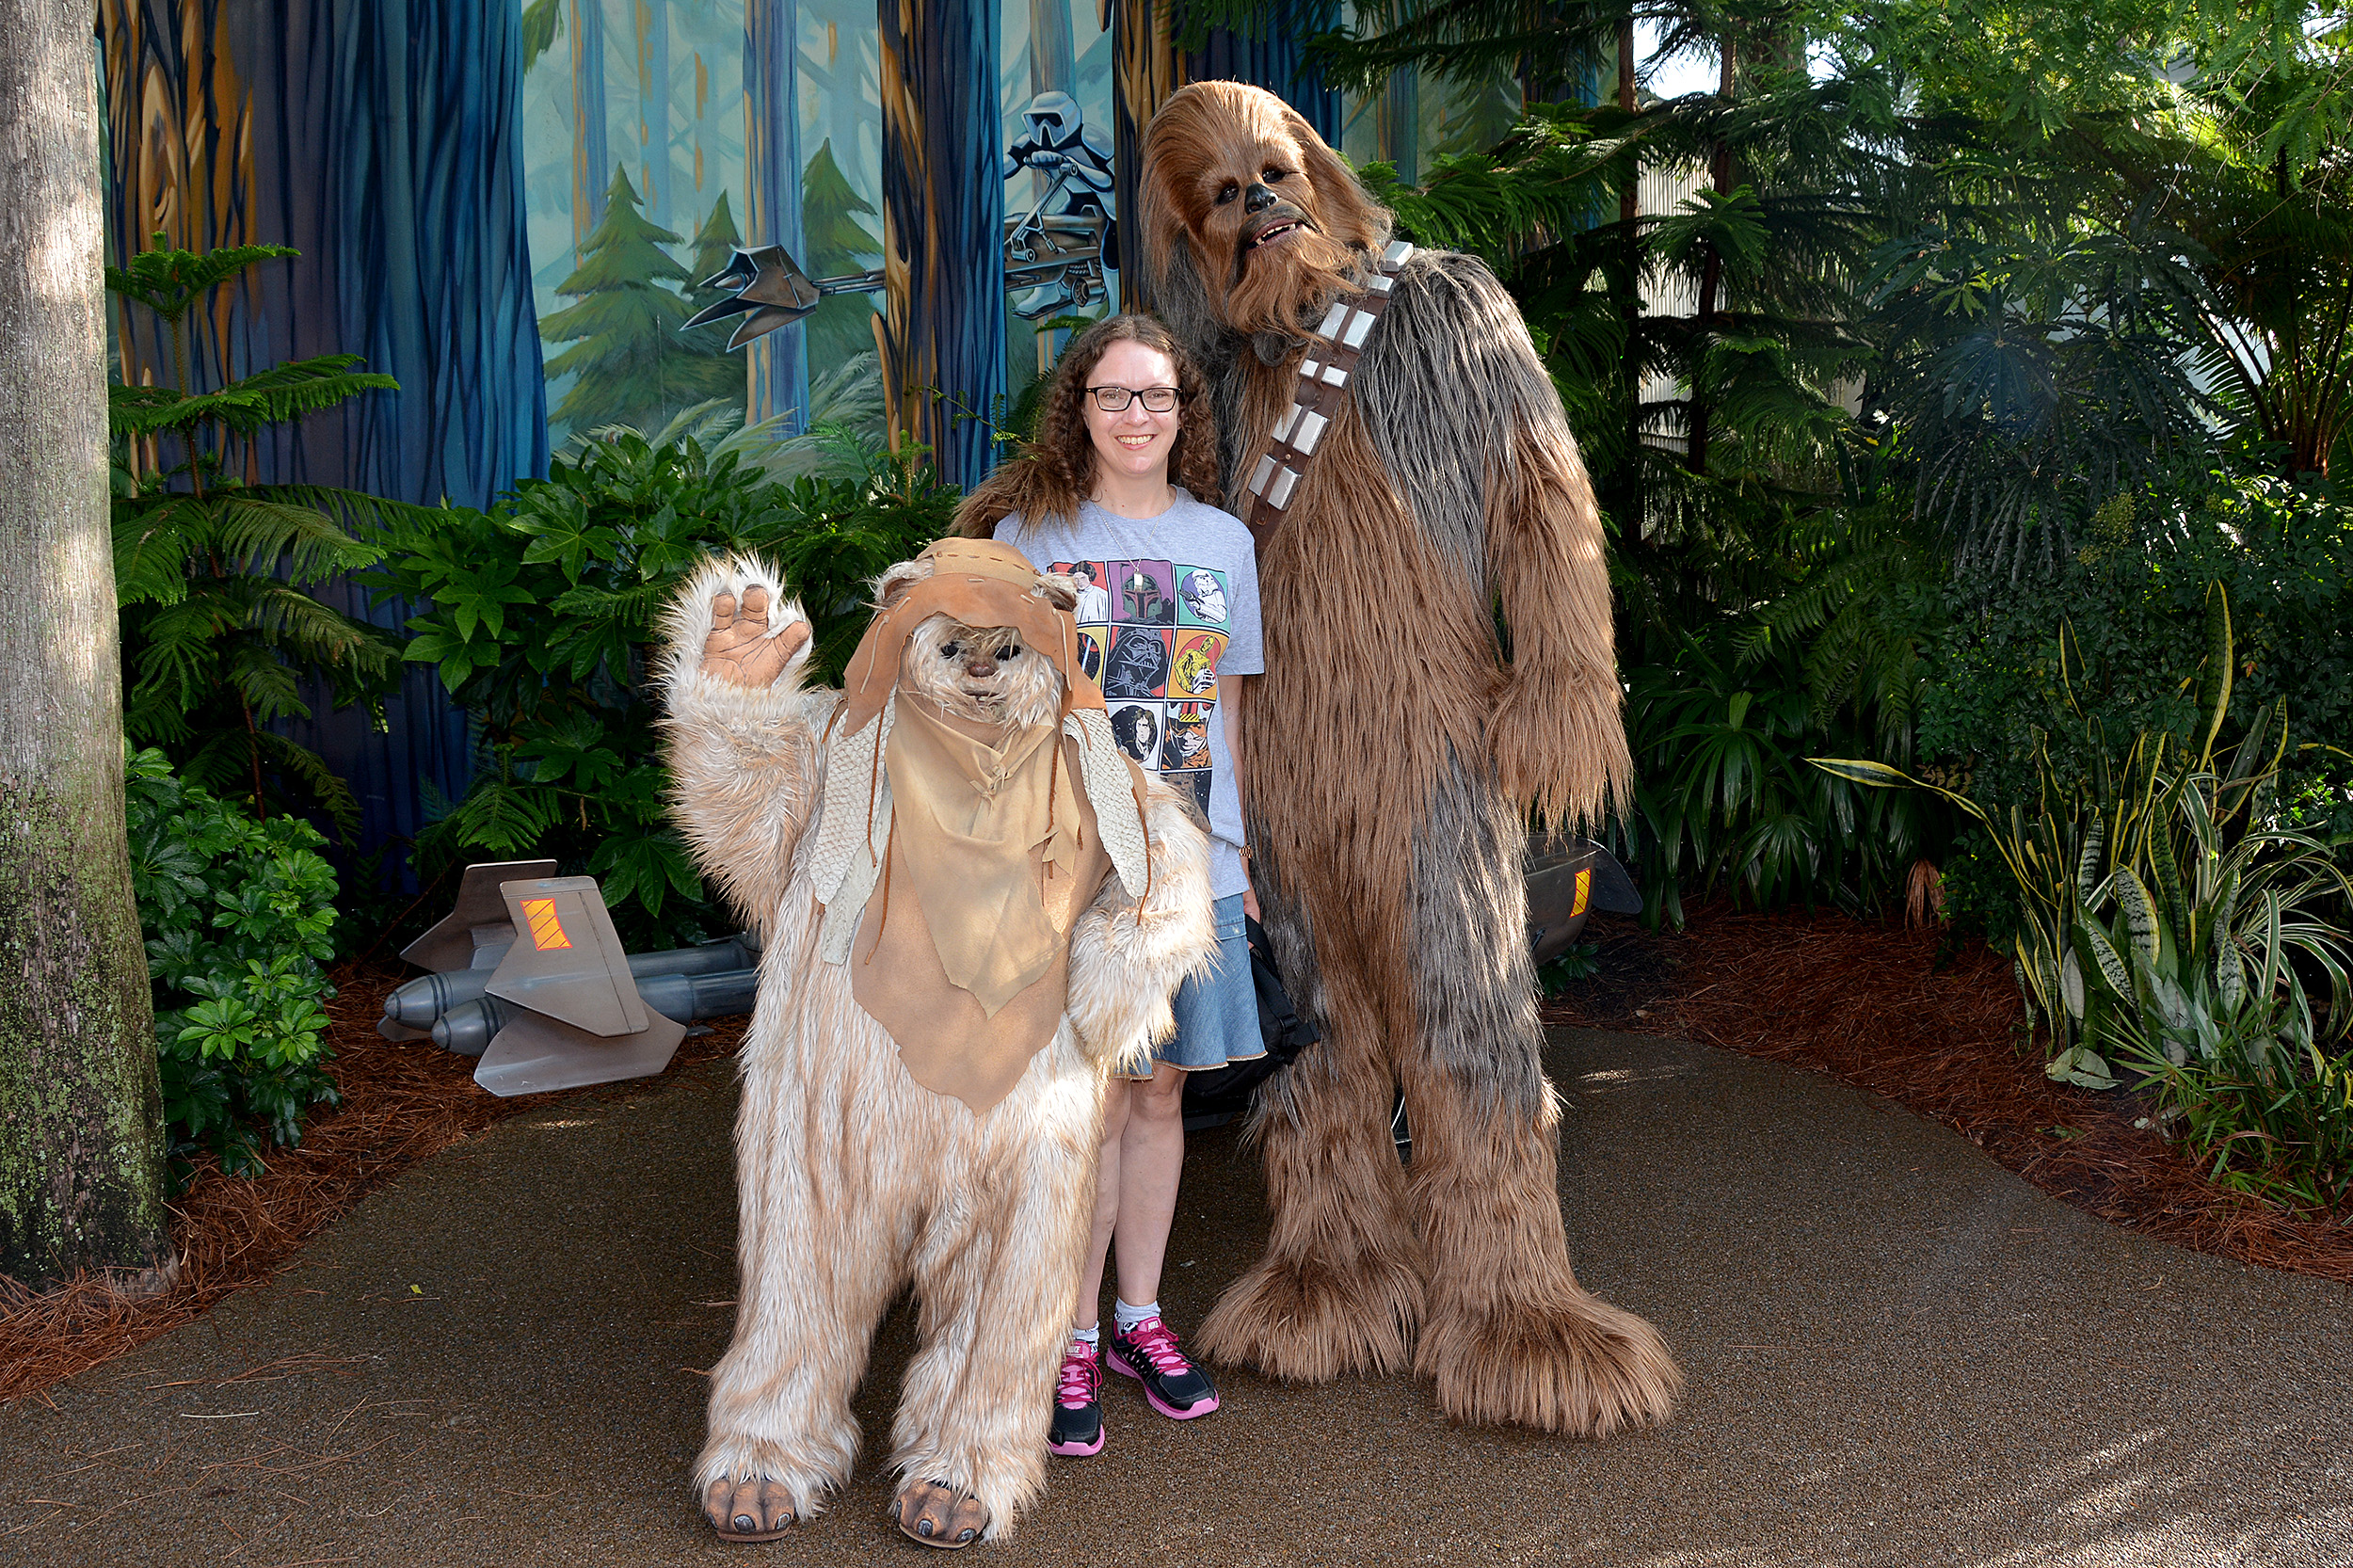 Galaxys edge star wars disneyland chewbacca